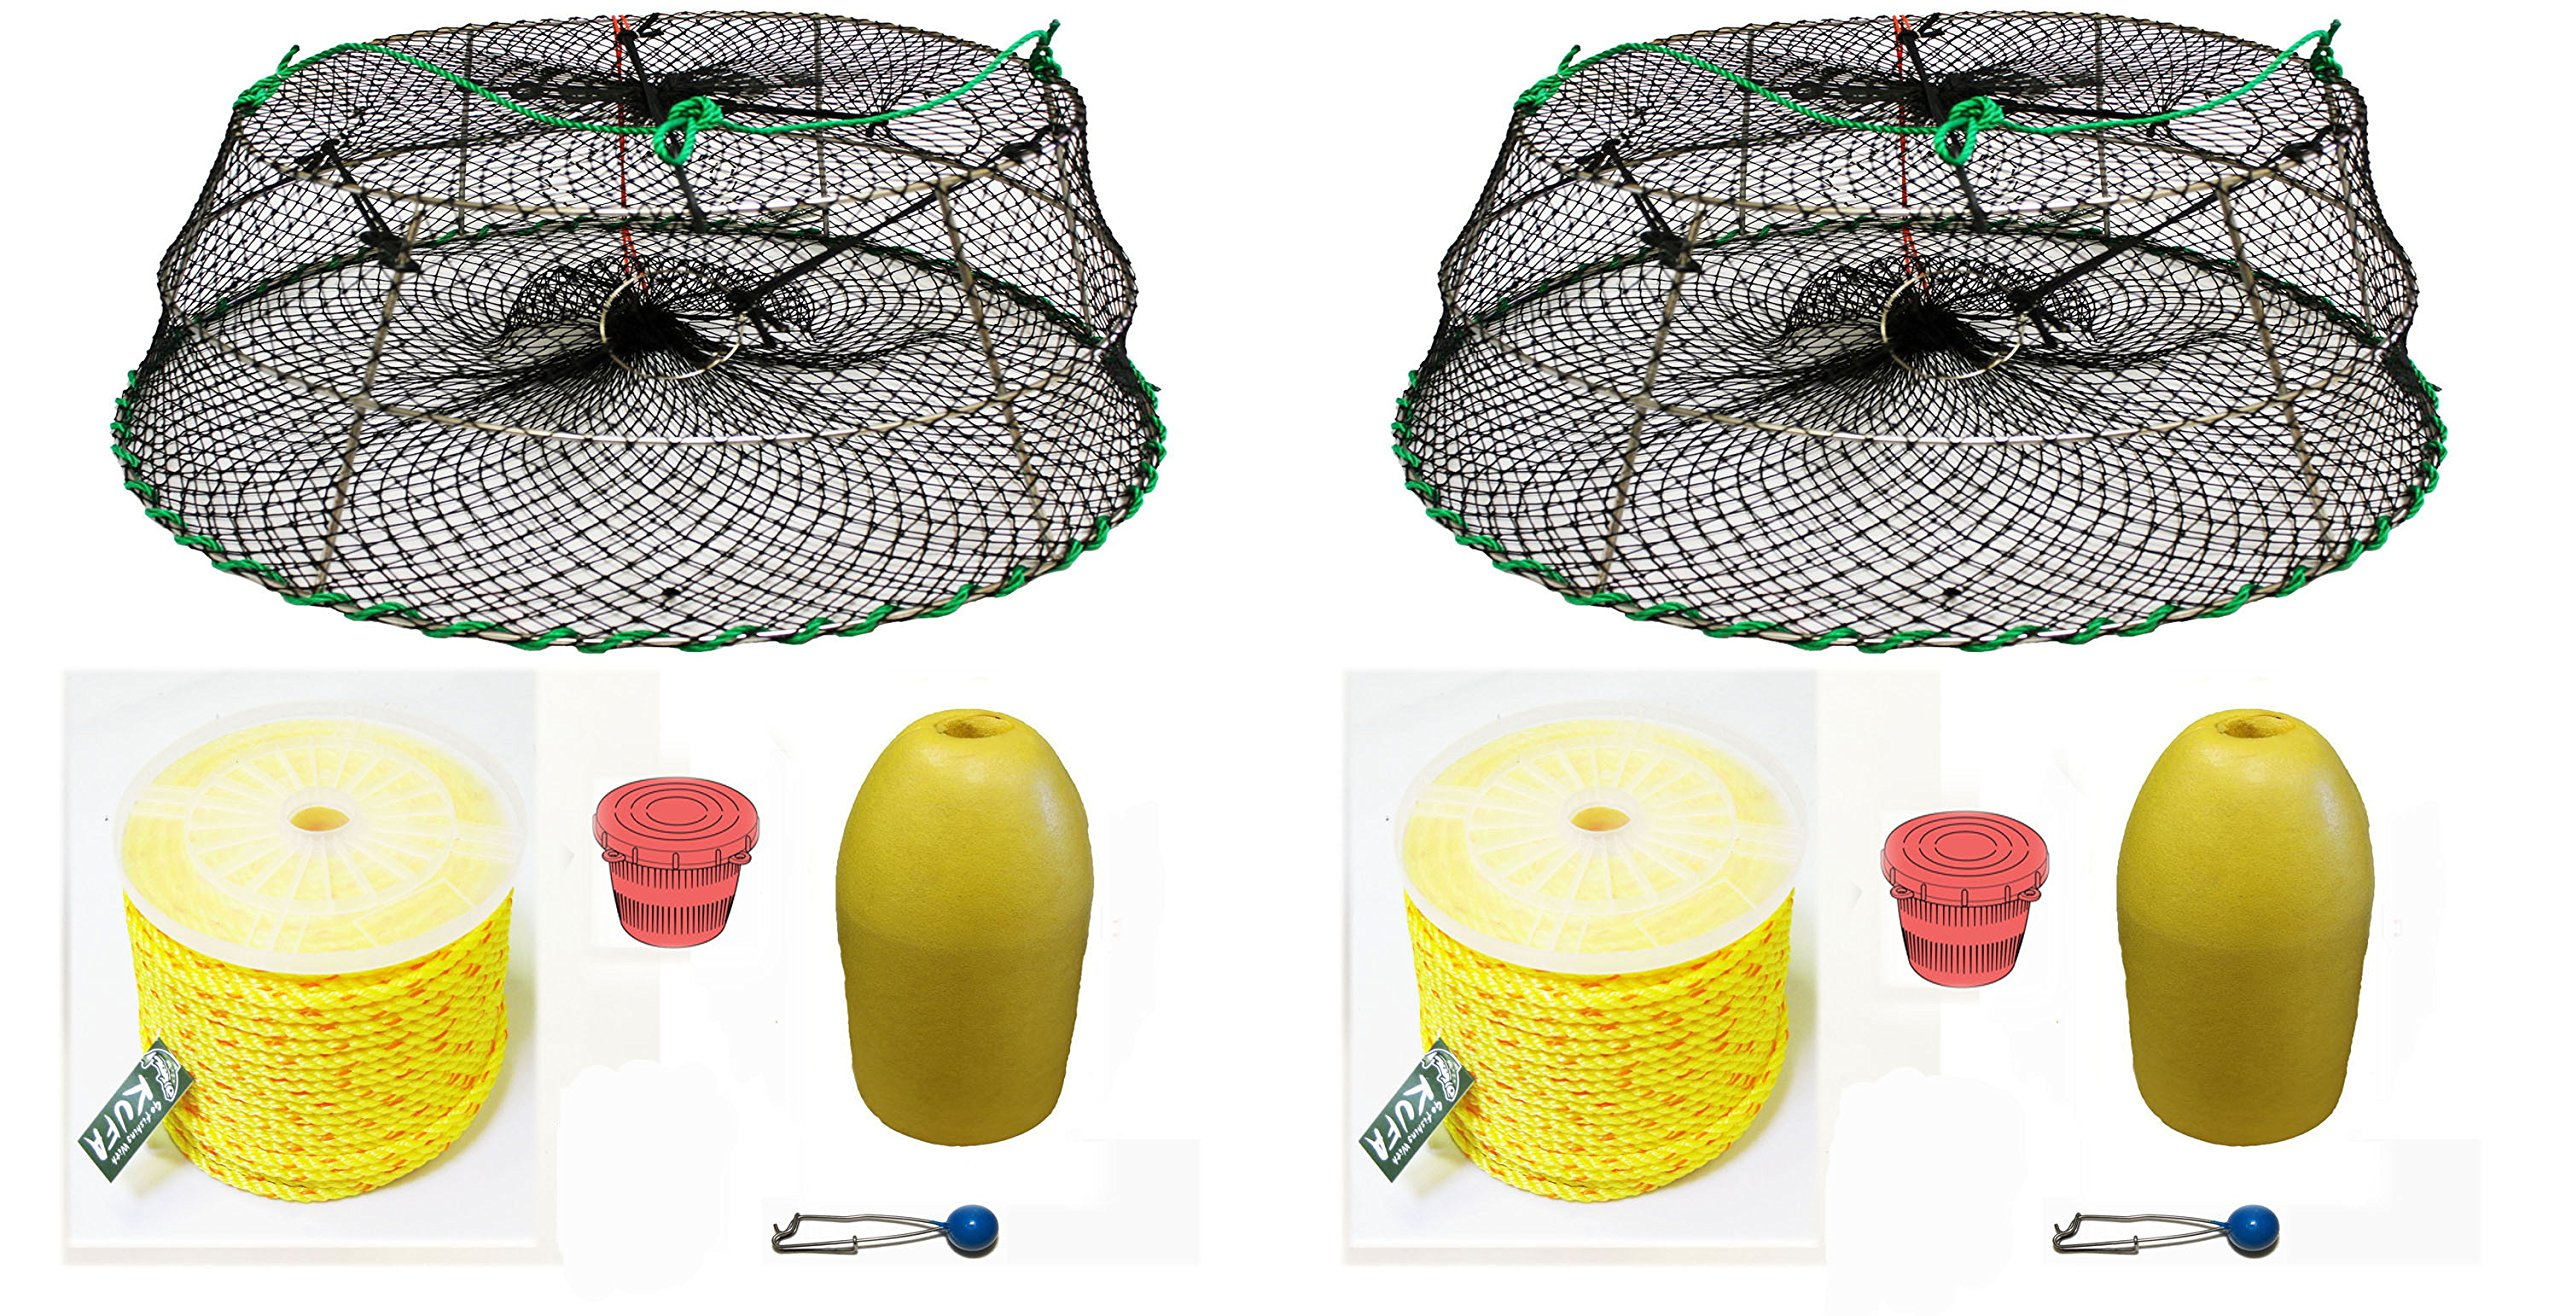 2-Pack of KUFA Sports Tower Style Prawn trap with 400' rope, Yellow float and Vented Bait Jar combo (CT77+PAP1)X2